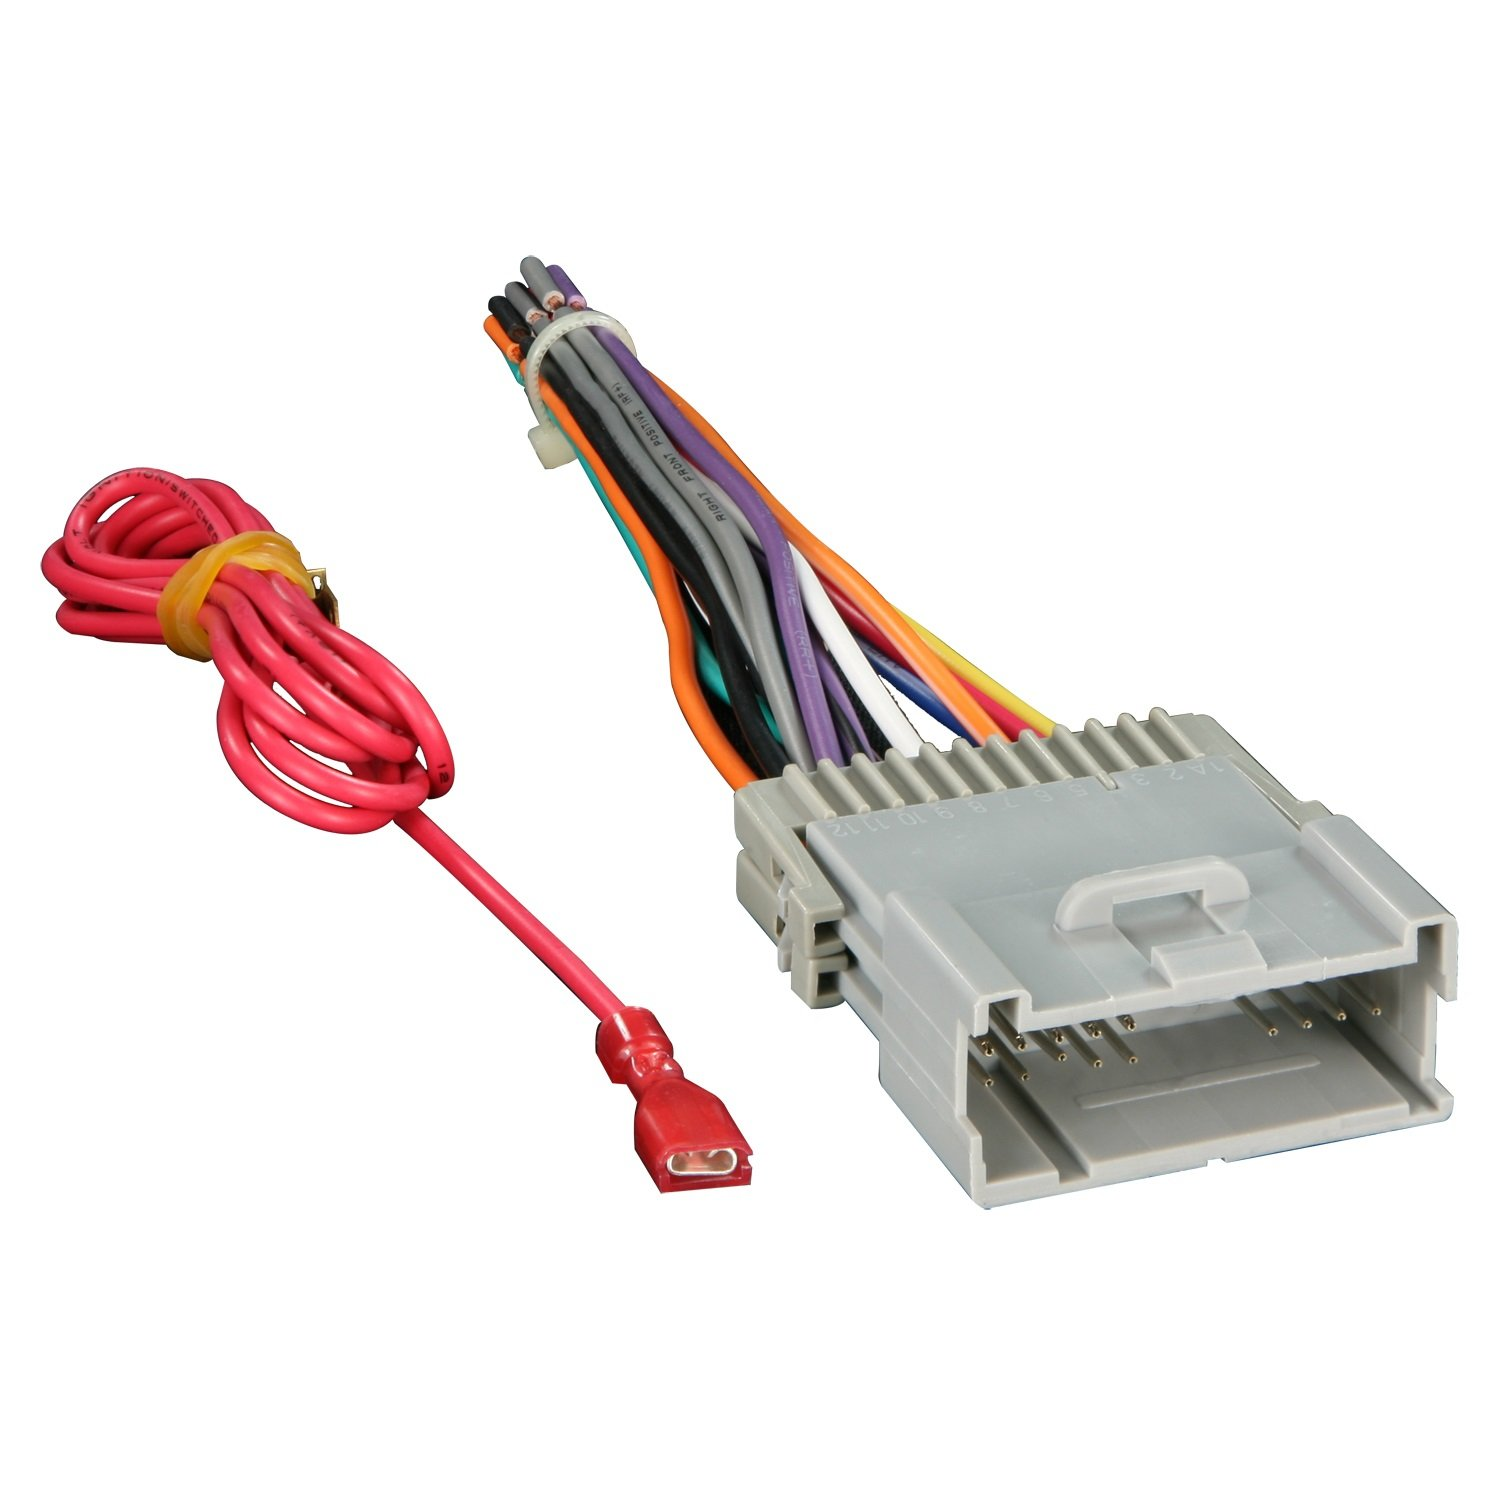 61eewxp9orL._SL1500_ amazon com metra 70 2003 radio wiring harness for gm 98 08 stereo wiring harness adapter at nearapp.co